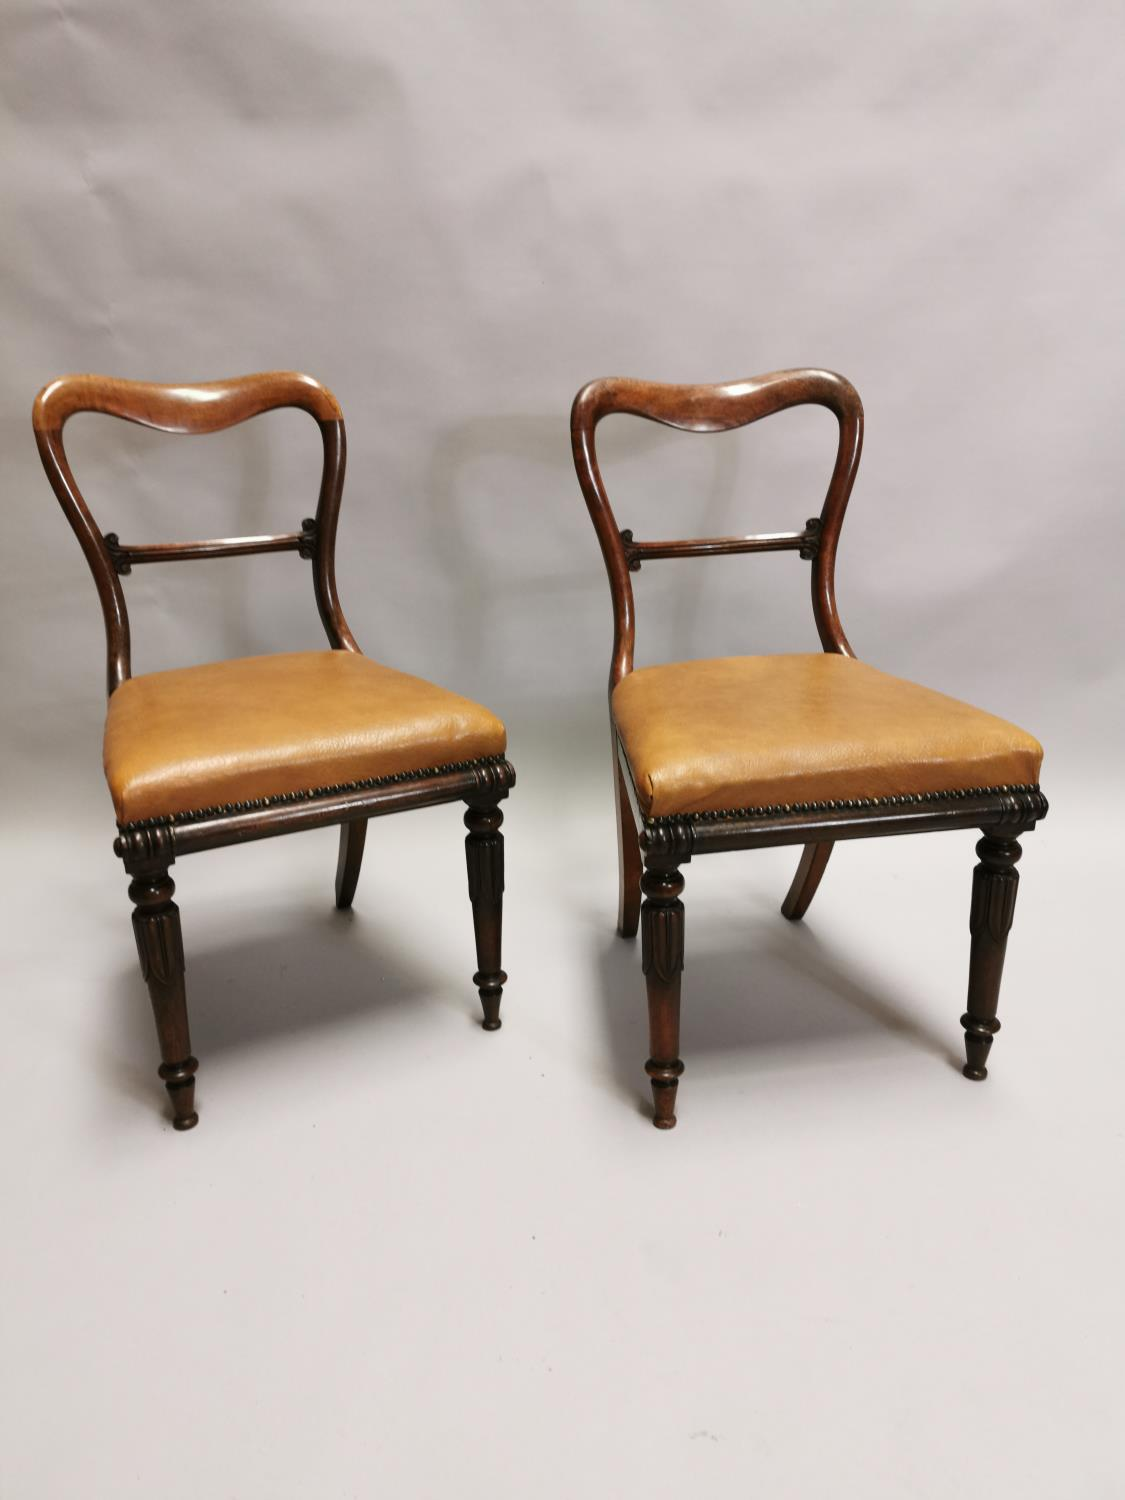 Pair of William IV rosewood side chairs